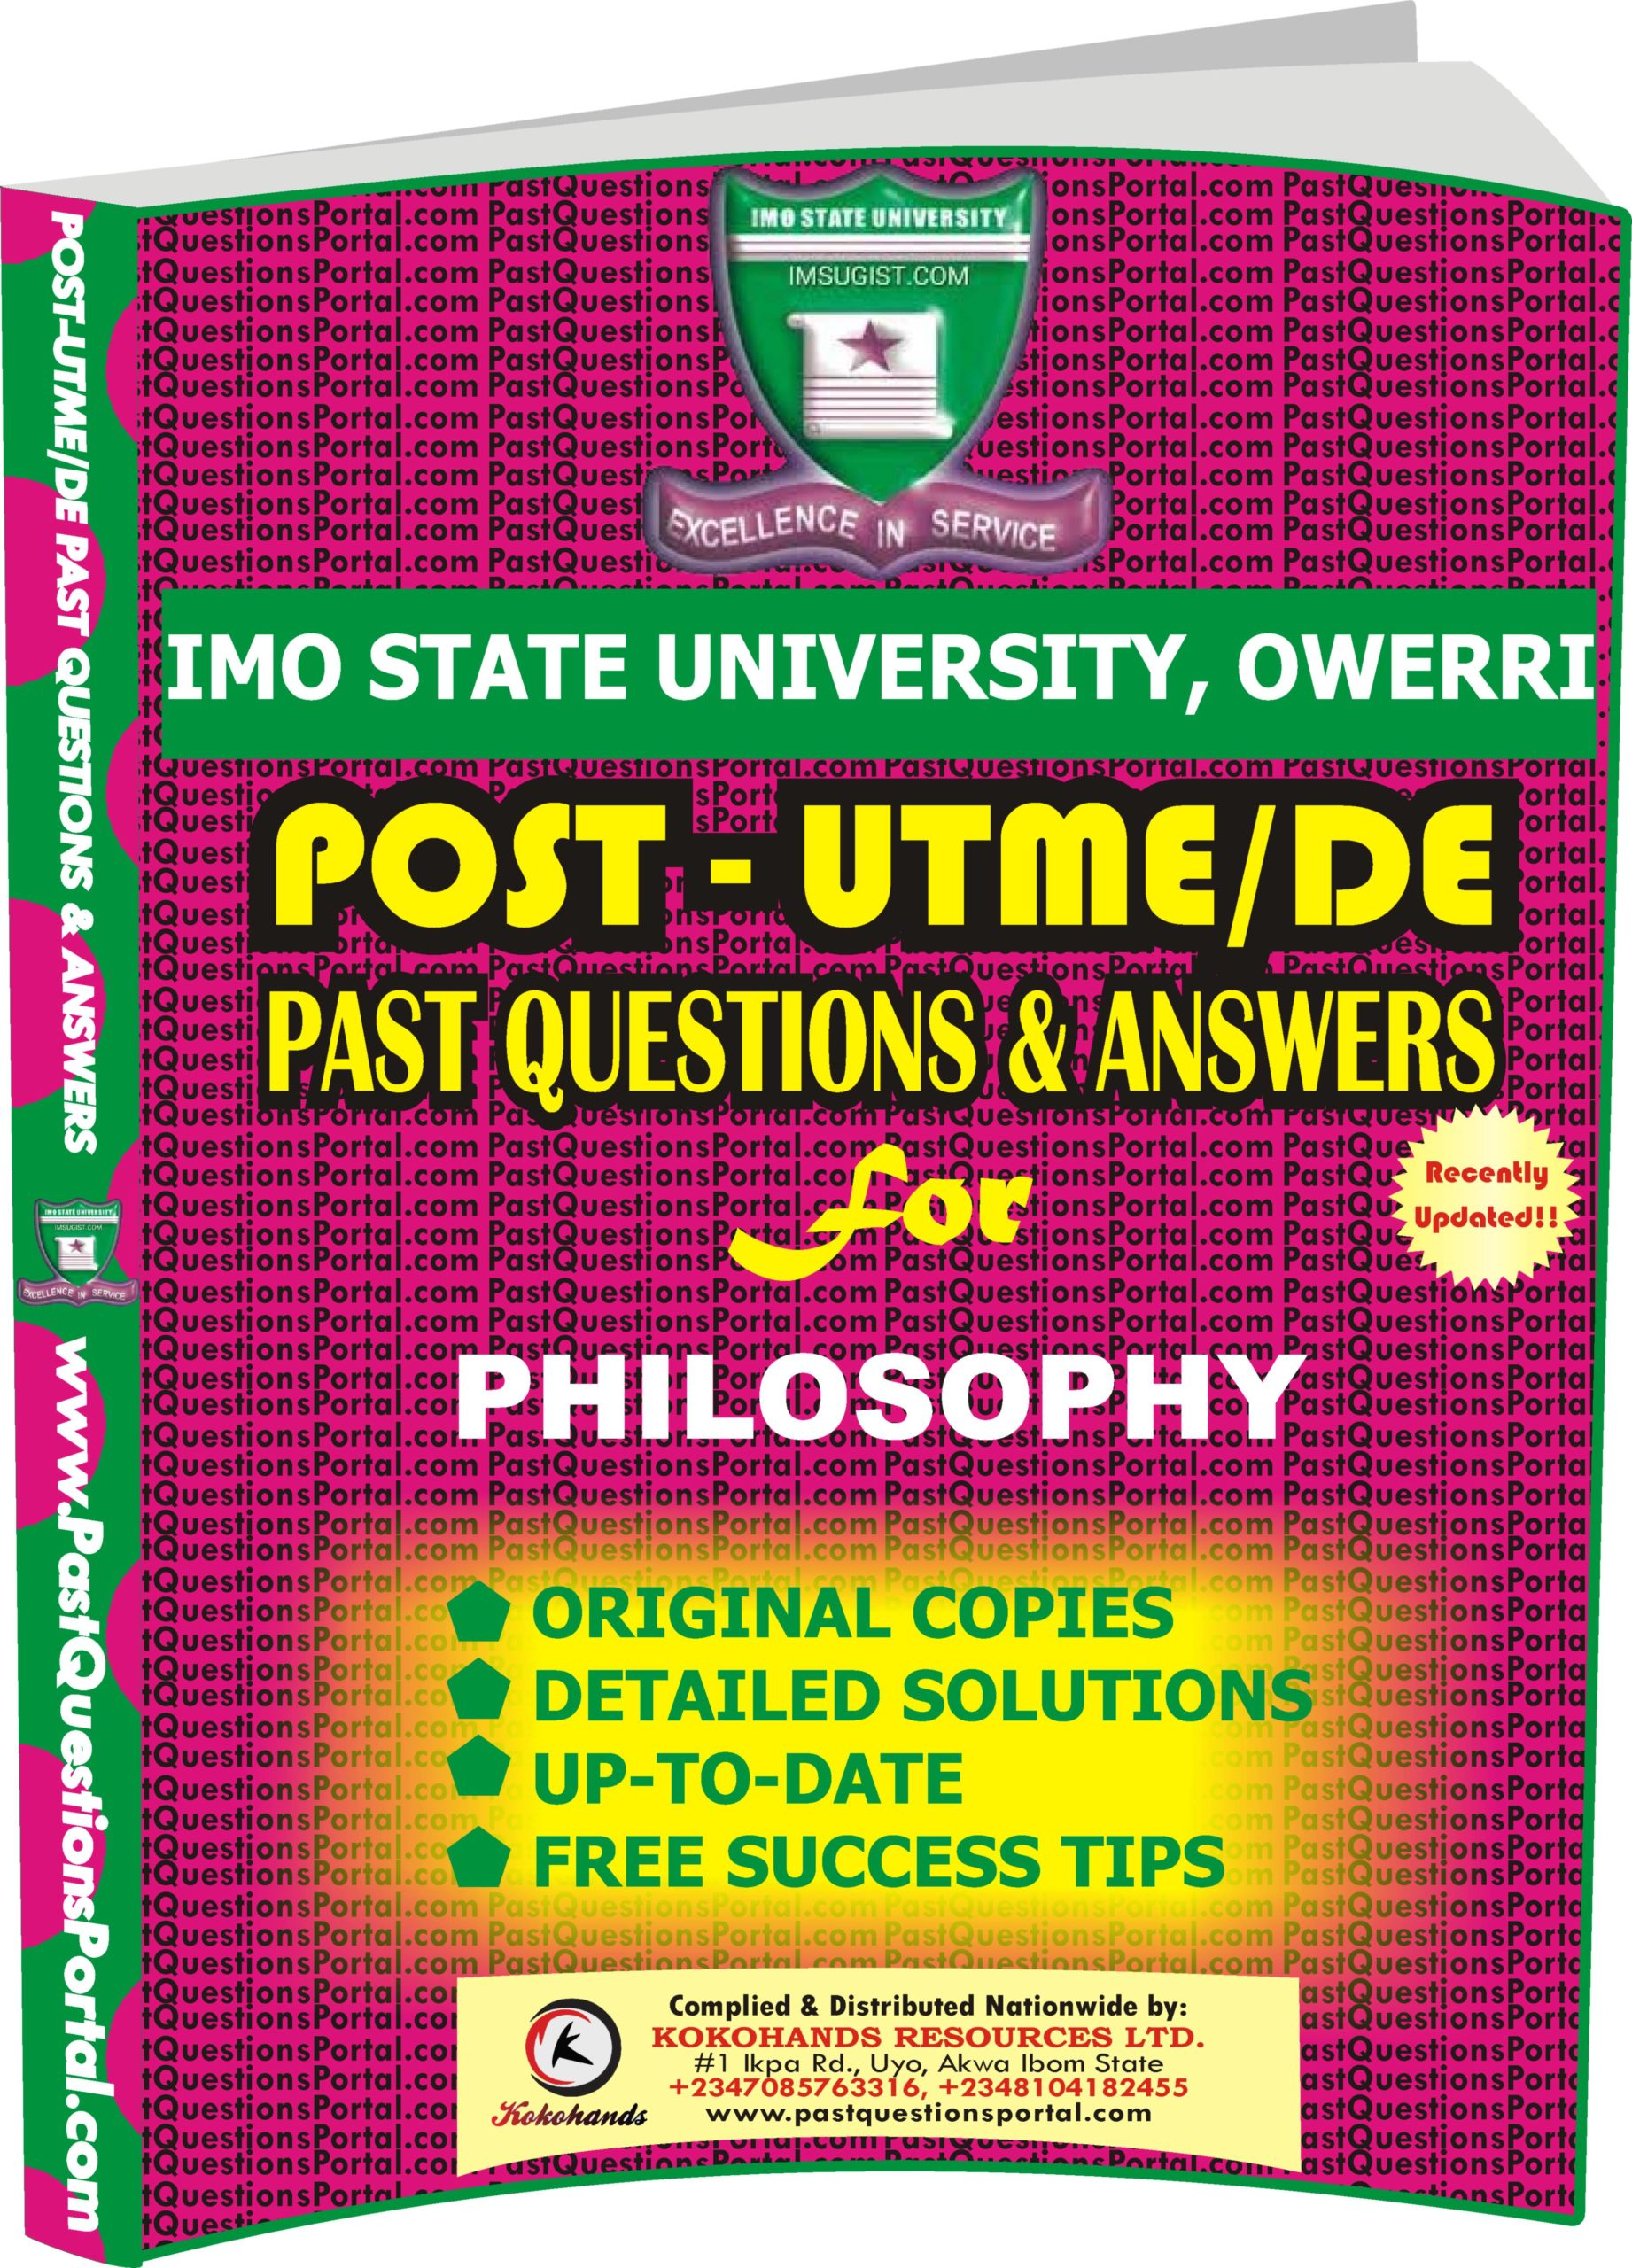 IMSU Post UTME Past Questions for PHILOSOPHY